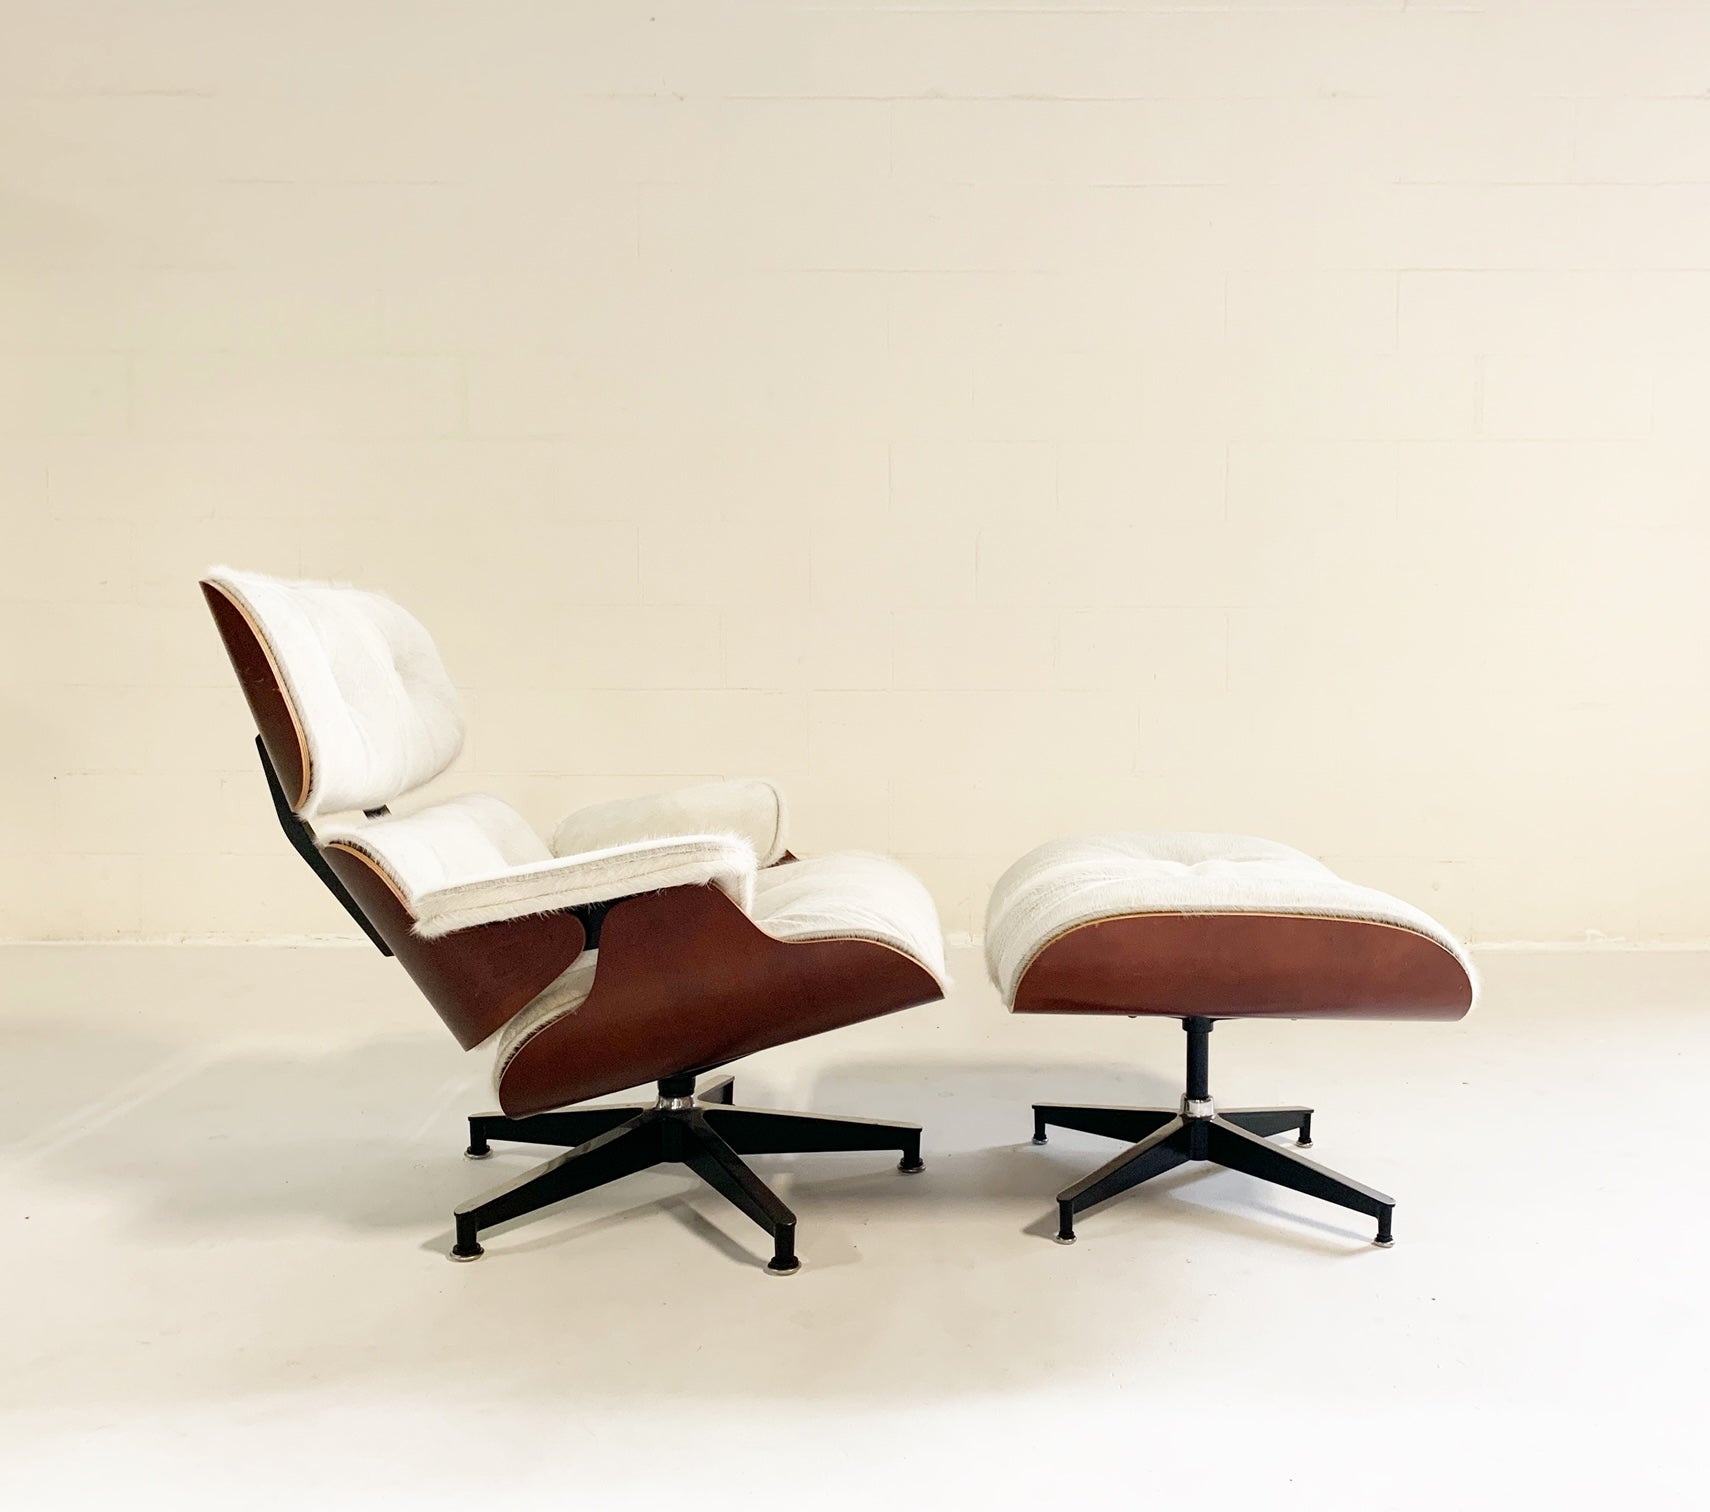 670 Lounge Chair and 671 Ottoman in Brazilian Cowhide - FORSYTH